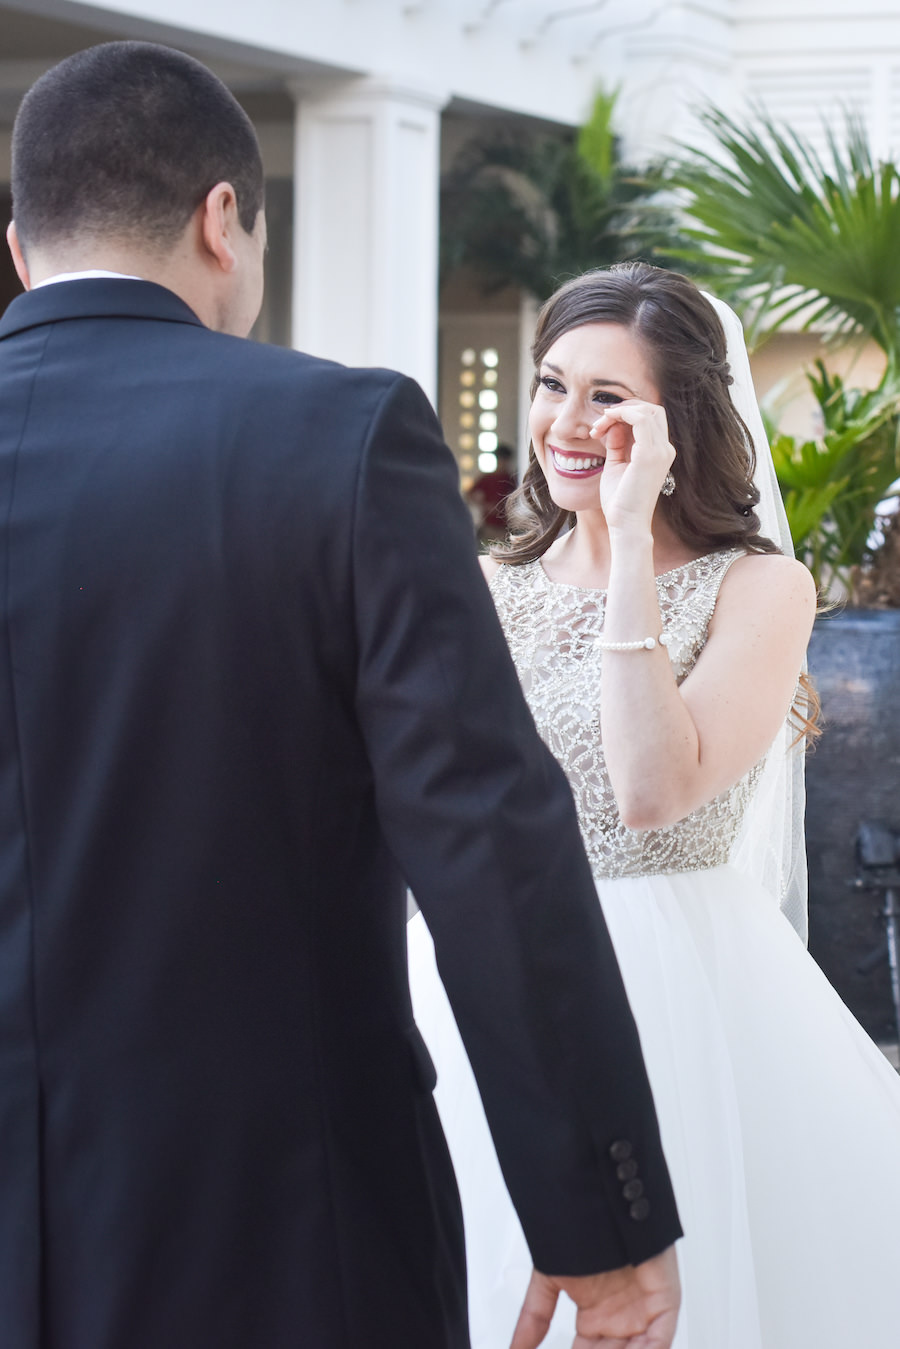 Clearwater Beach Bride and Groom First Look Wedding Portrait | Clearwater Wedding Hair and Makeup Artist Michele Renee The Studio